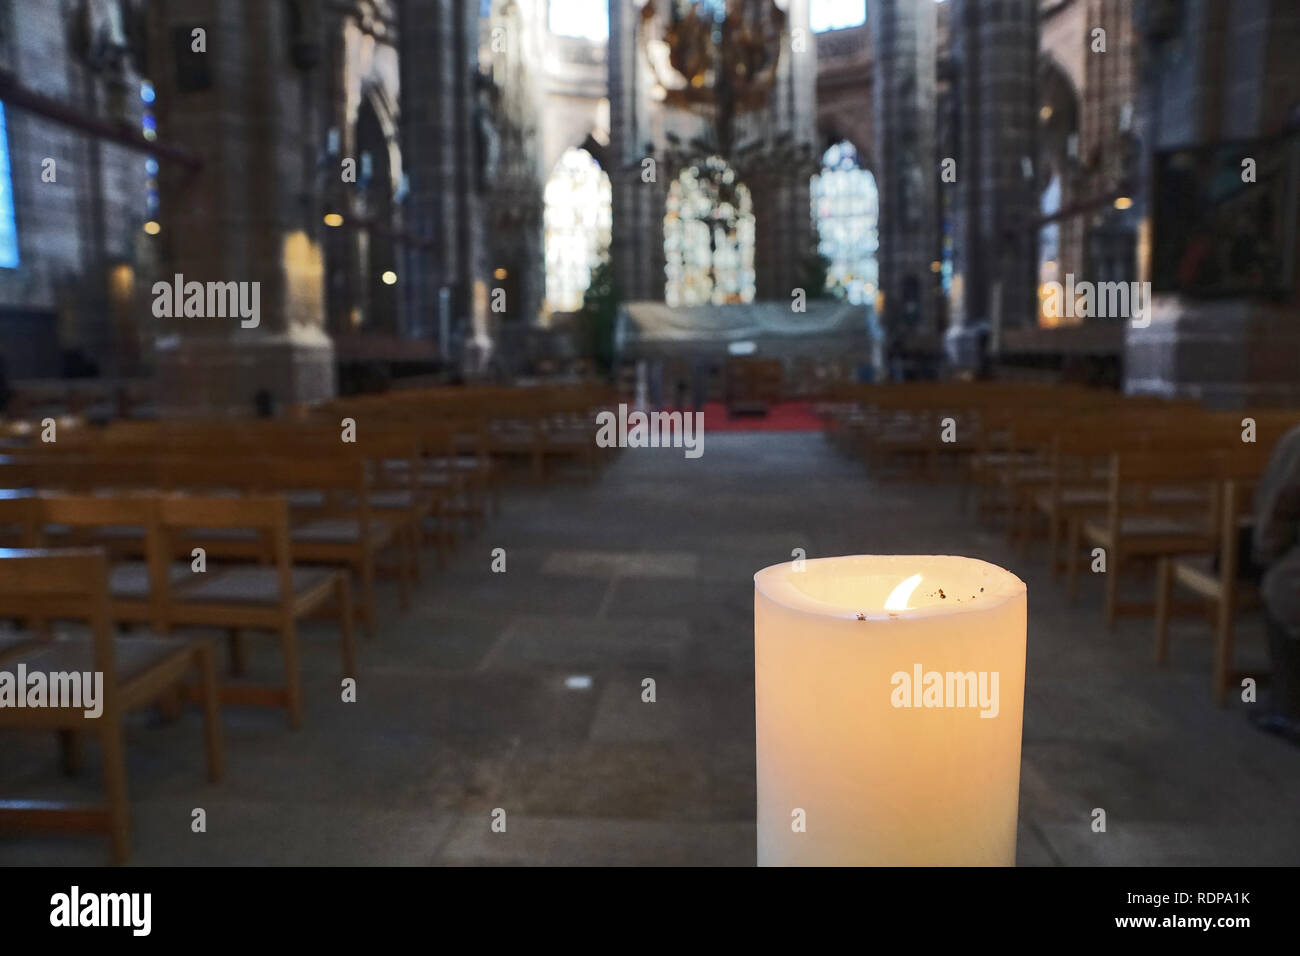 Burning candle in the church - Stock Image